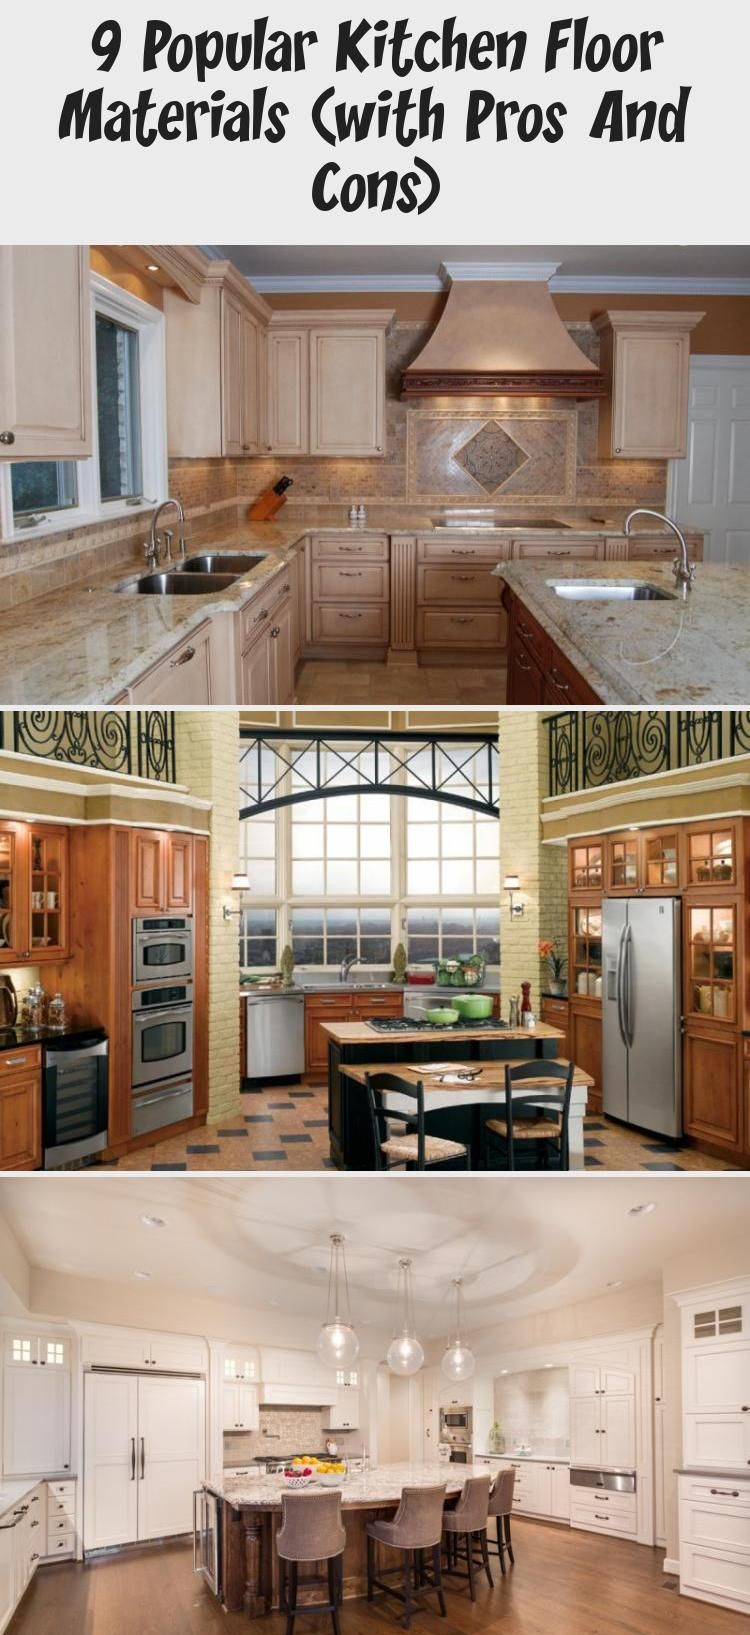 9 Popular Kitchen Floor Materials With Pros And Cons Decorations Acquire The Pros And Cons Virtua In 2020 Popular Kitchens Kitchen Flooring Kitchen Tiles Design